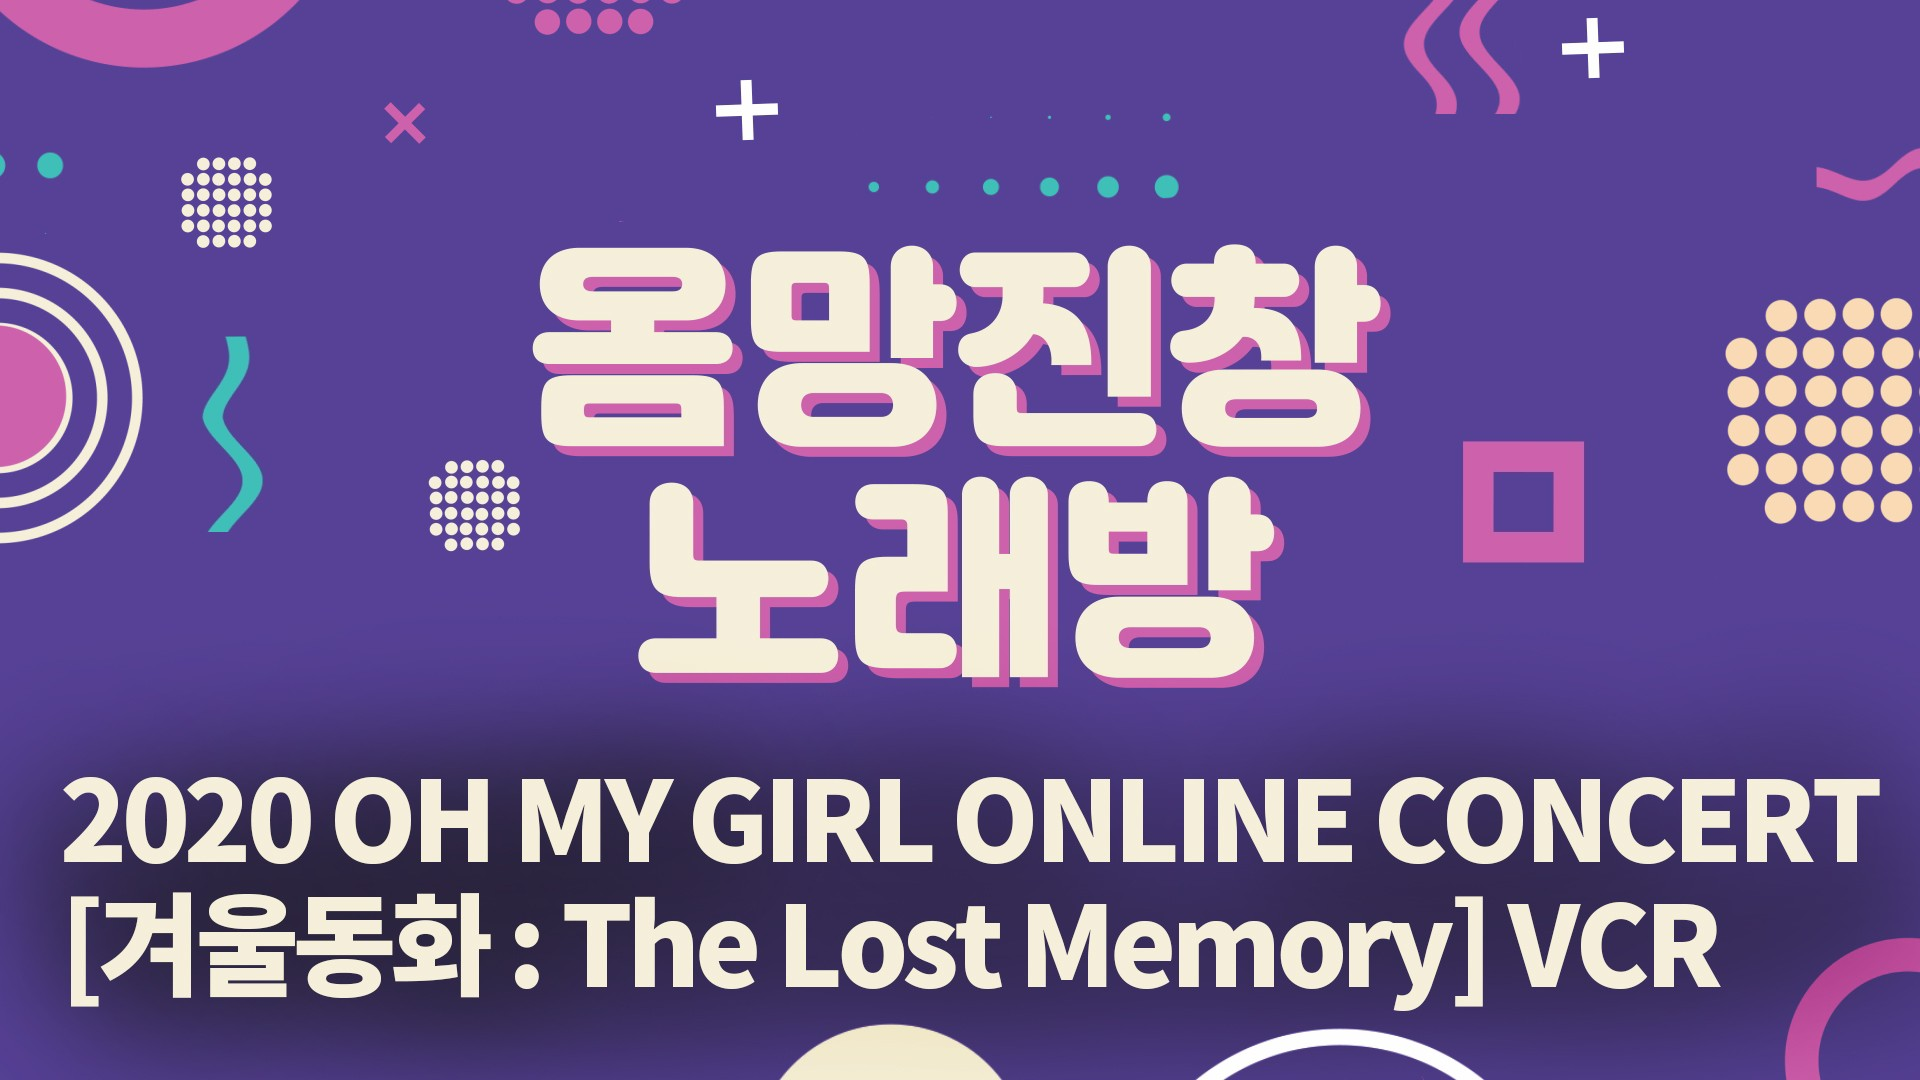 2020 OH MY GIRL ONLINE CONCERT [겨울동화 : The Lost Memory] VCR - 옴망진창 노래방